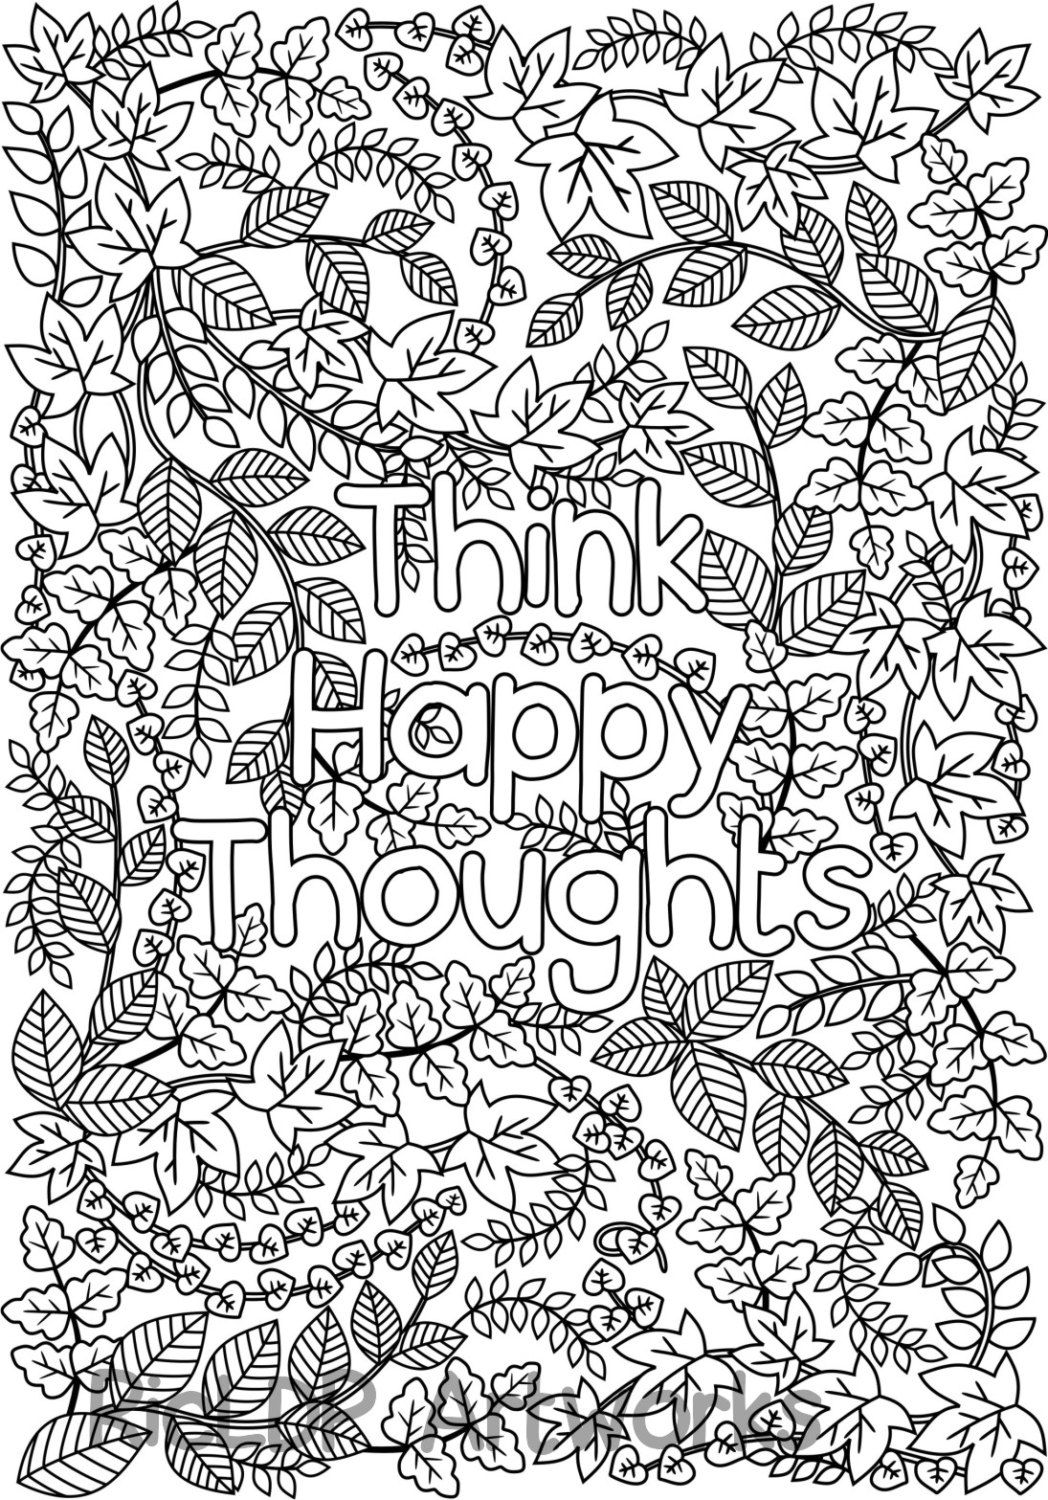 18++ Quote coloring pages download ideas in 2021